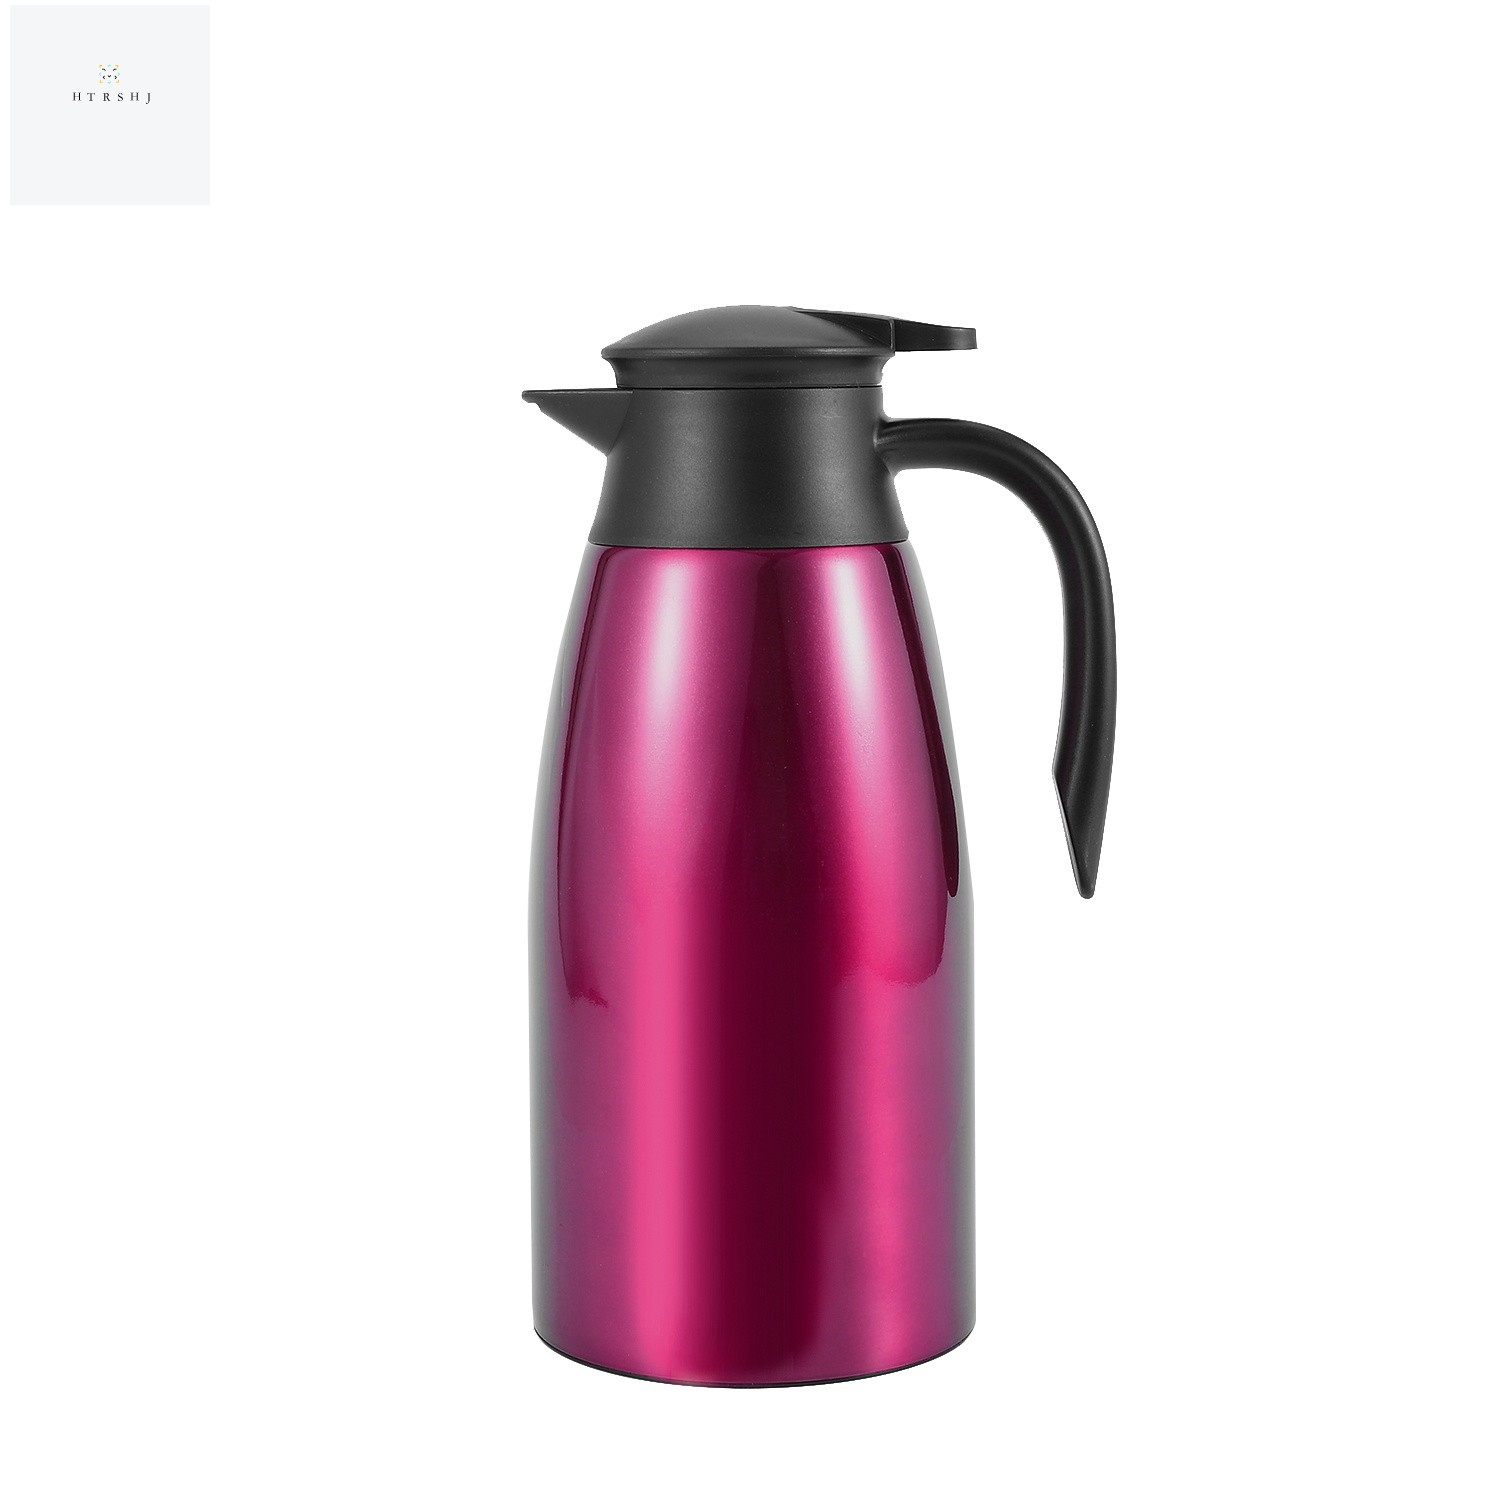 NINGWANG Purple 304 Steel 2L Thermal Flask Vacuum Insulated Water Pot Coffee Tea Milk Jug Thermal Pitcher for Home and Office